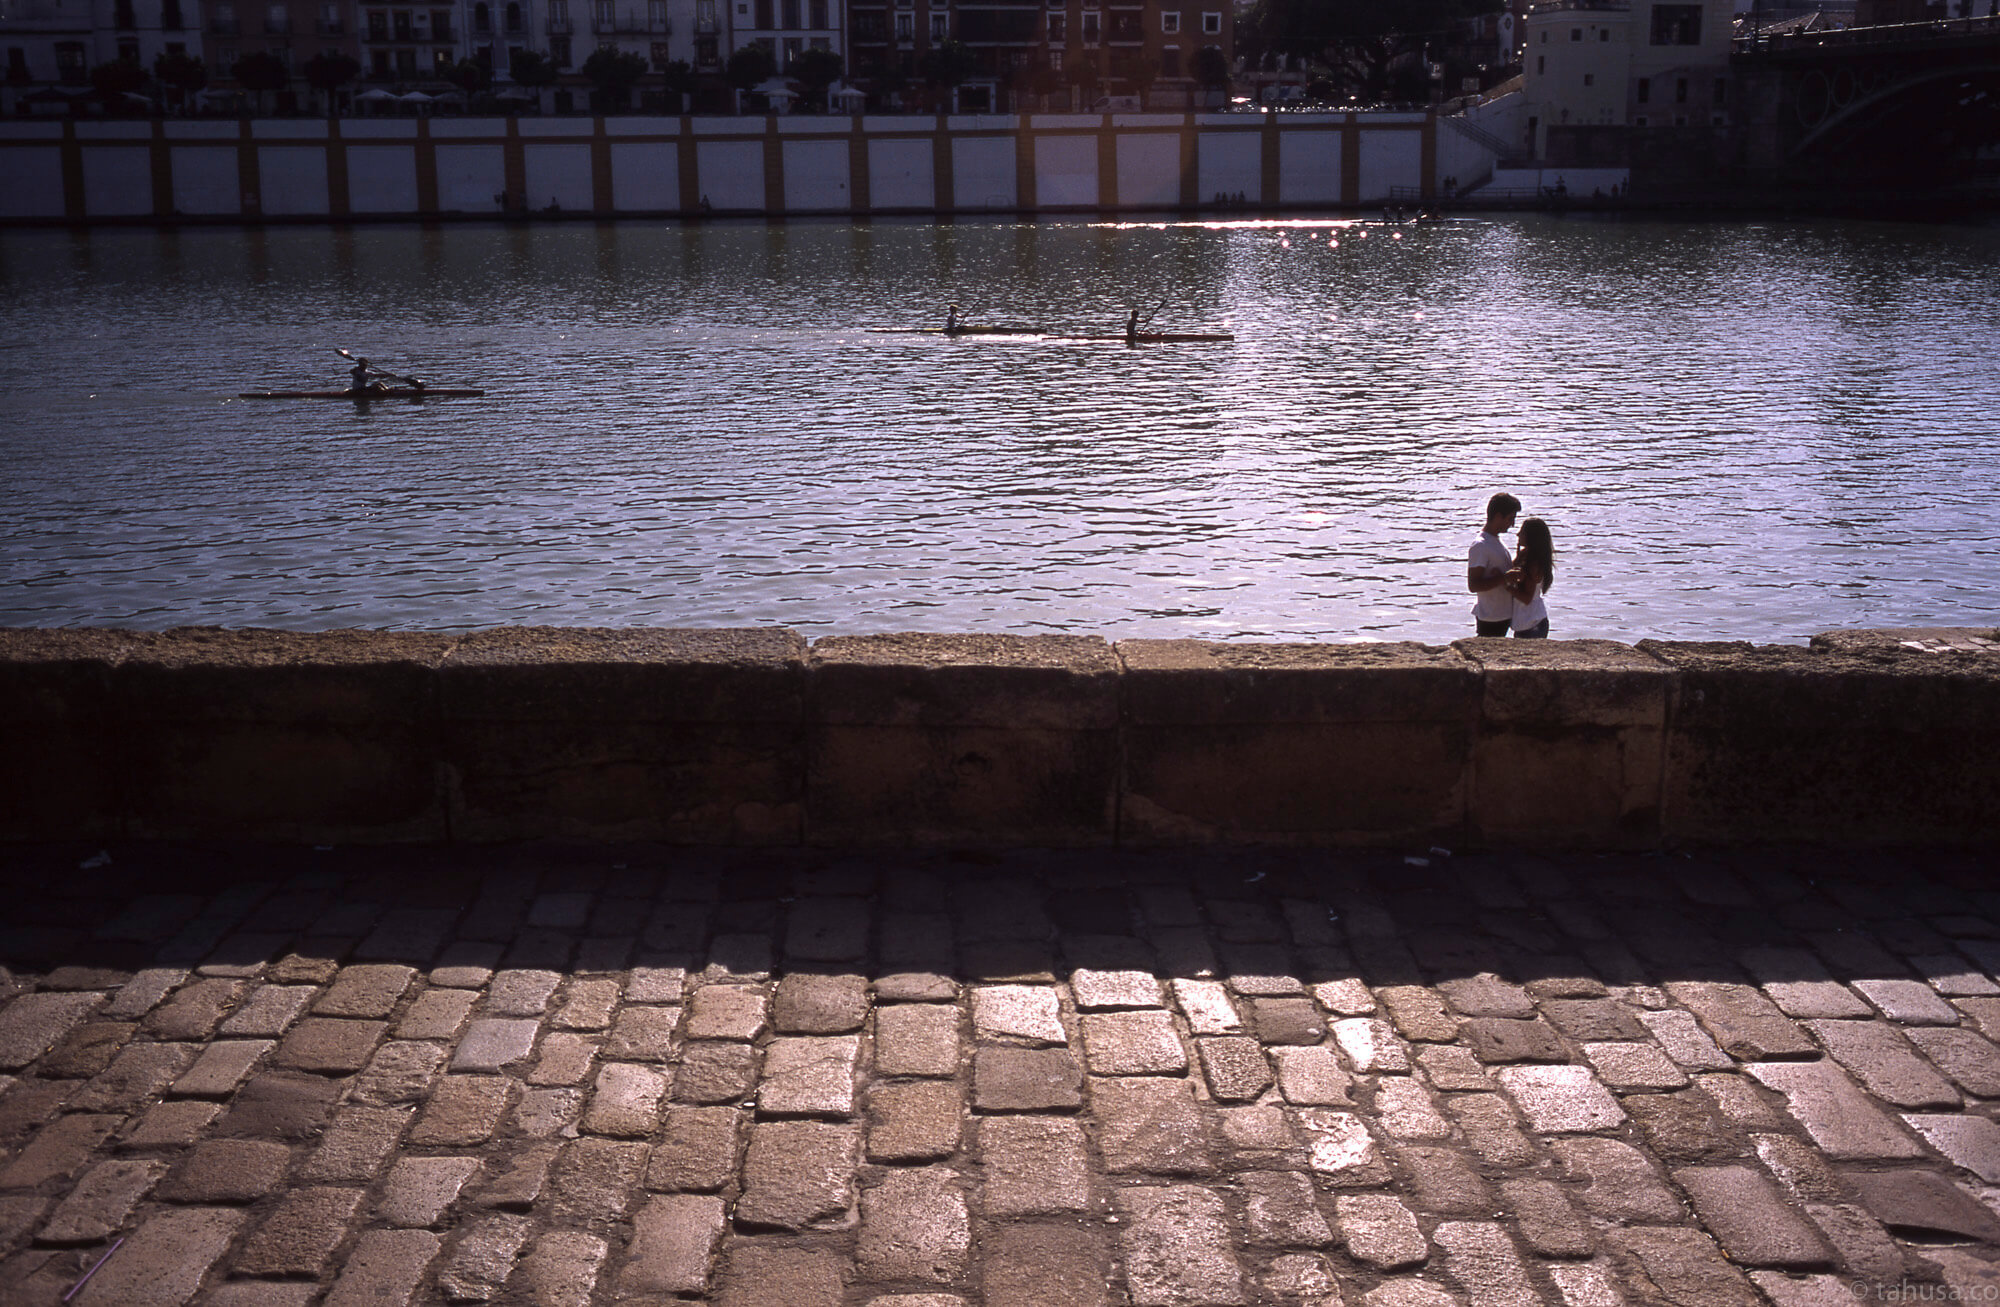 kiss-couple-lovers-intimating-Sevilla-Seville-Spain-Europe-children-walking-positive-film-analog-E6-provia-RDPIII-RDP-fuji-fujifilm-Summicron-35mm-f1-v1-canada-8elements-8ele